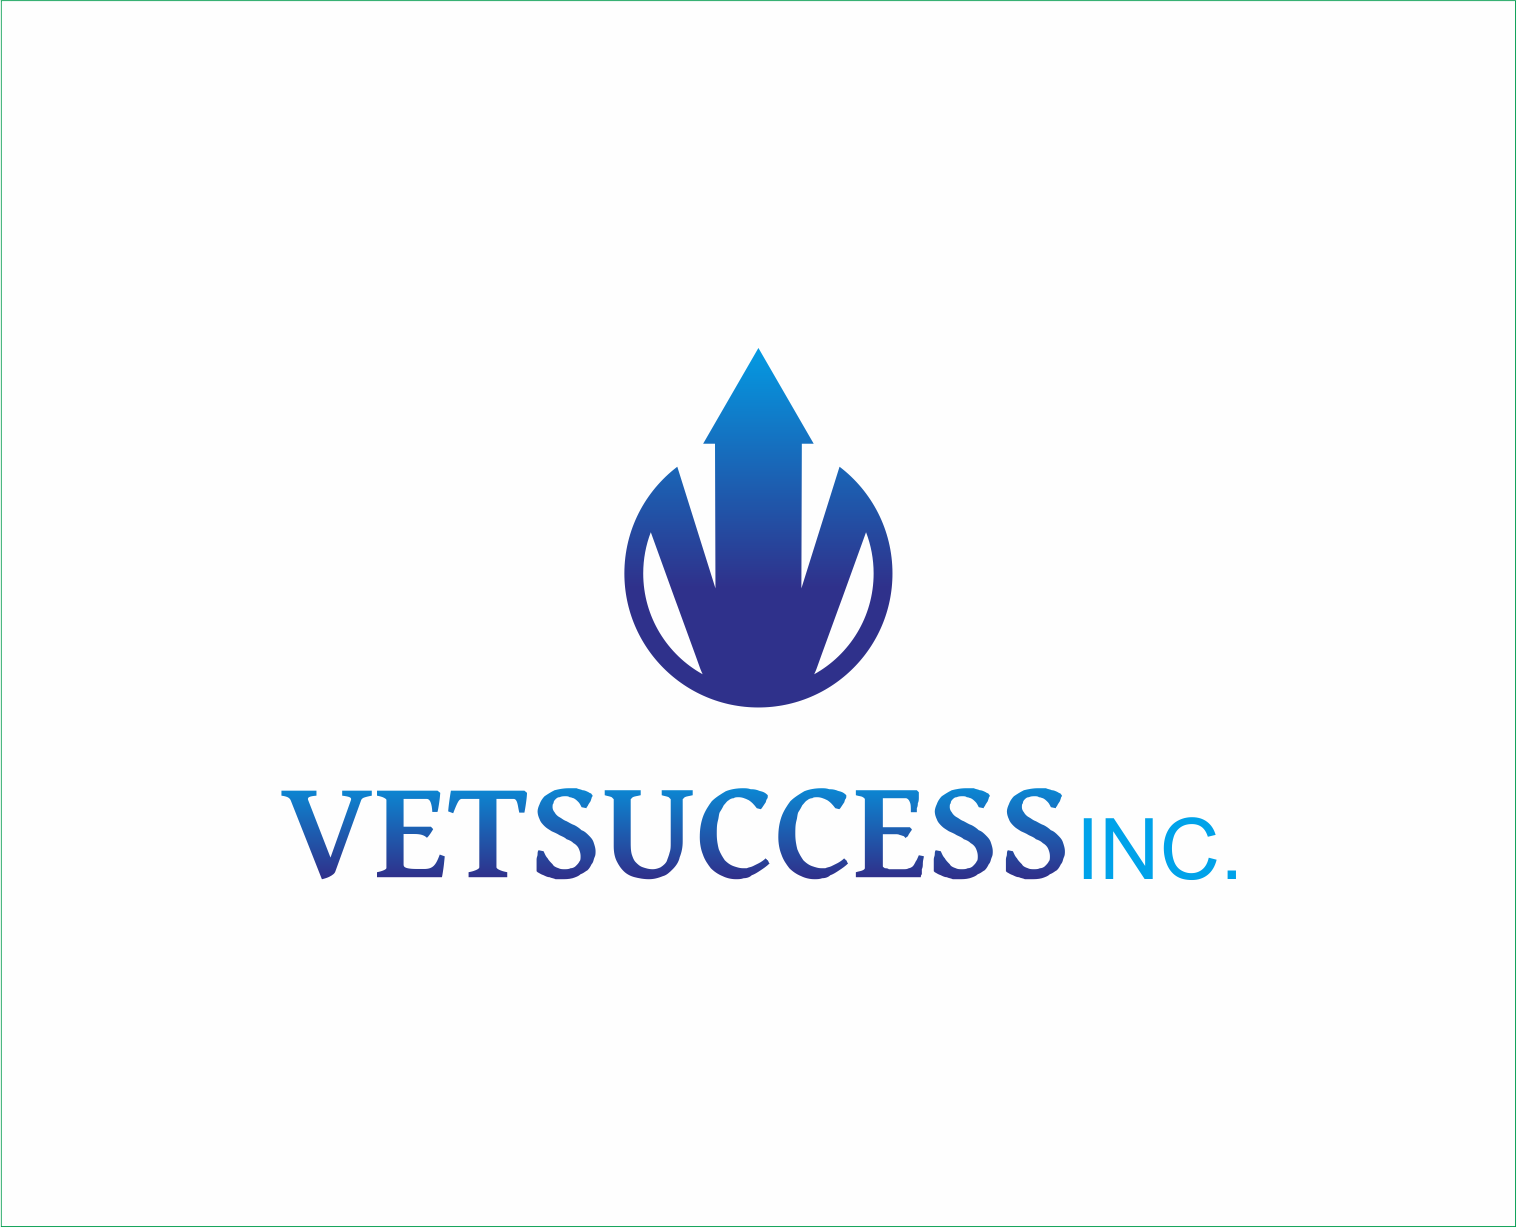 Logo Design by Armada Jamaluddin - Entry No. 166 in the Logo Design Contest Imaginative Logo Design for Vet Success Inc..